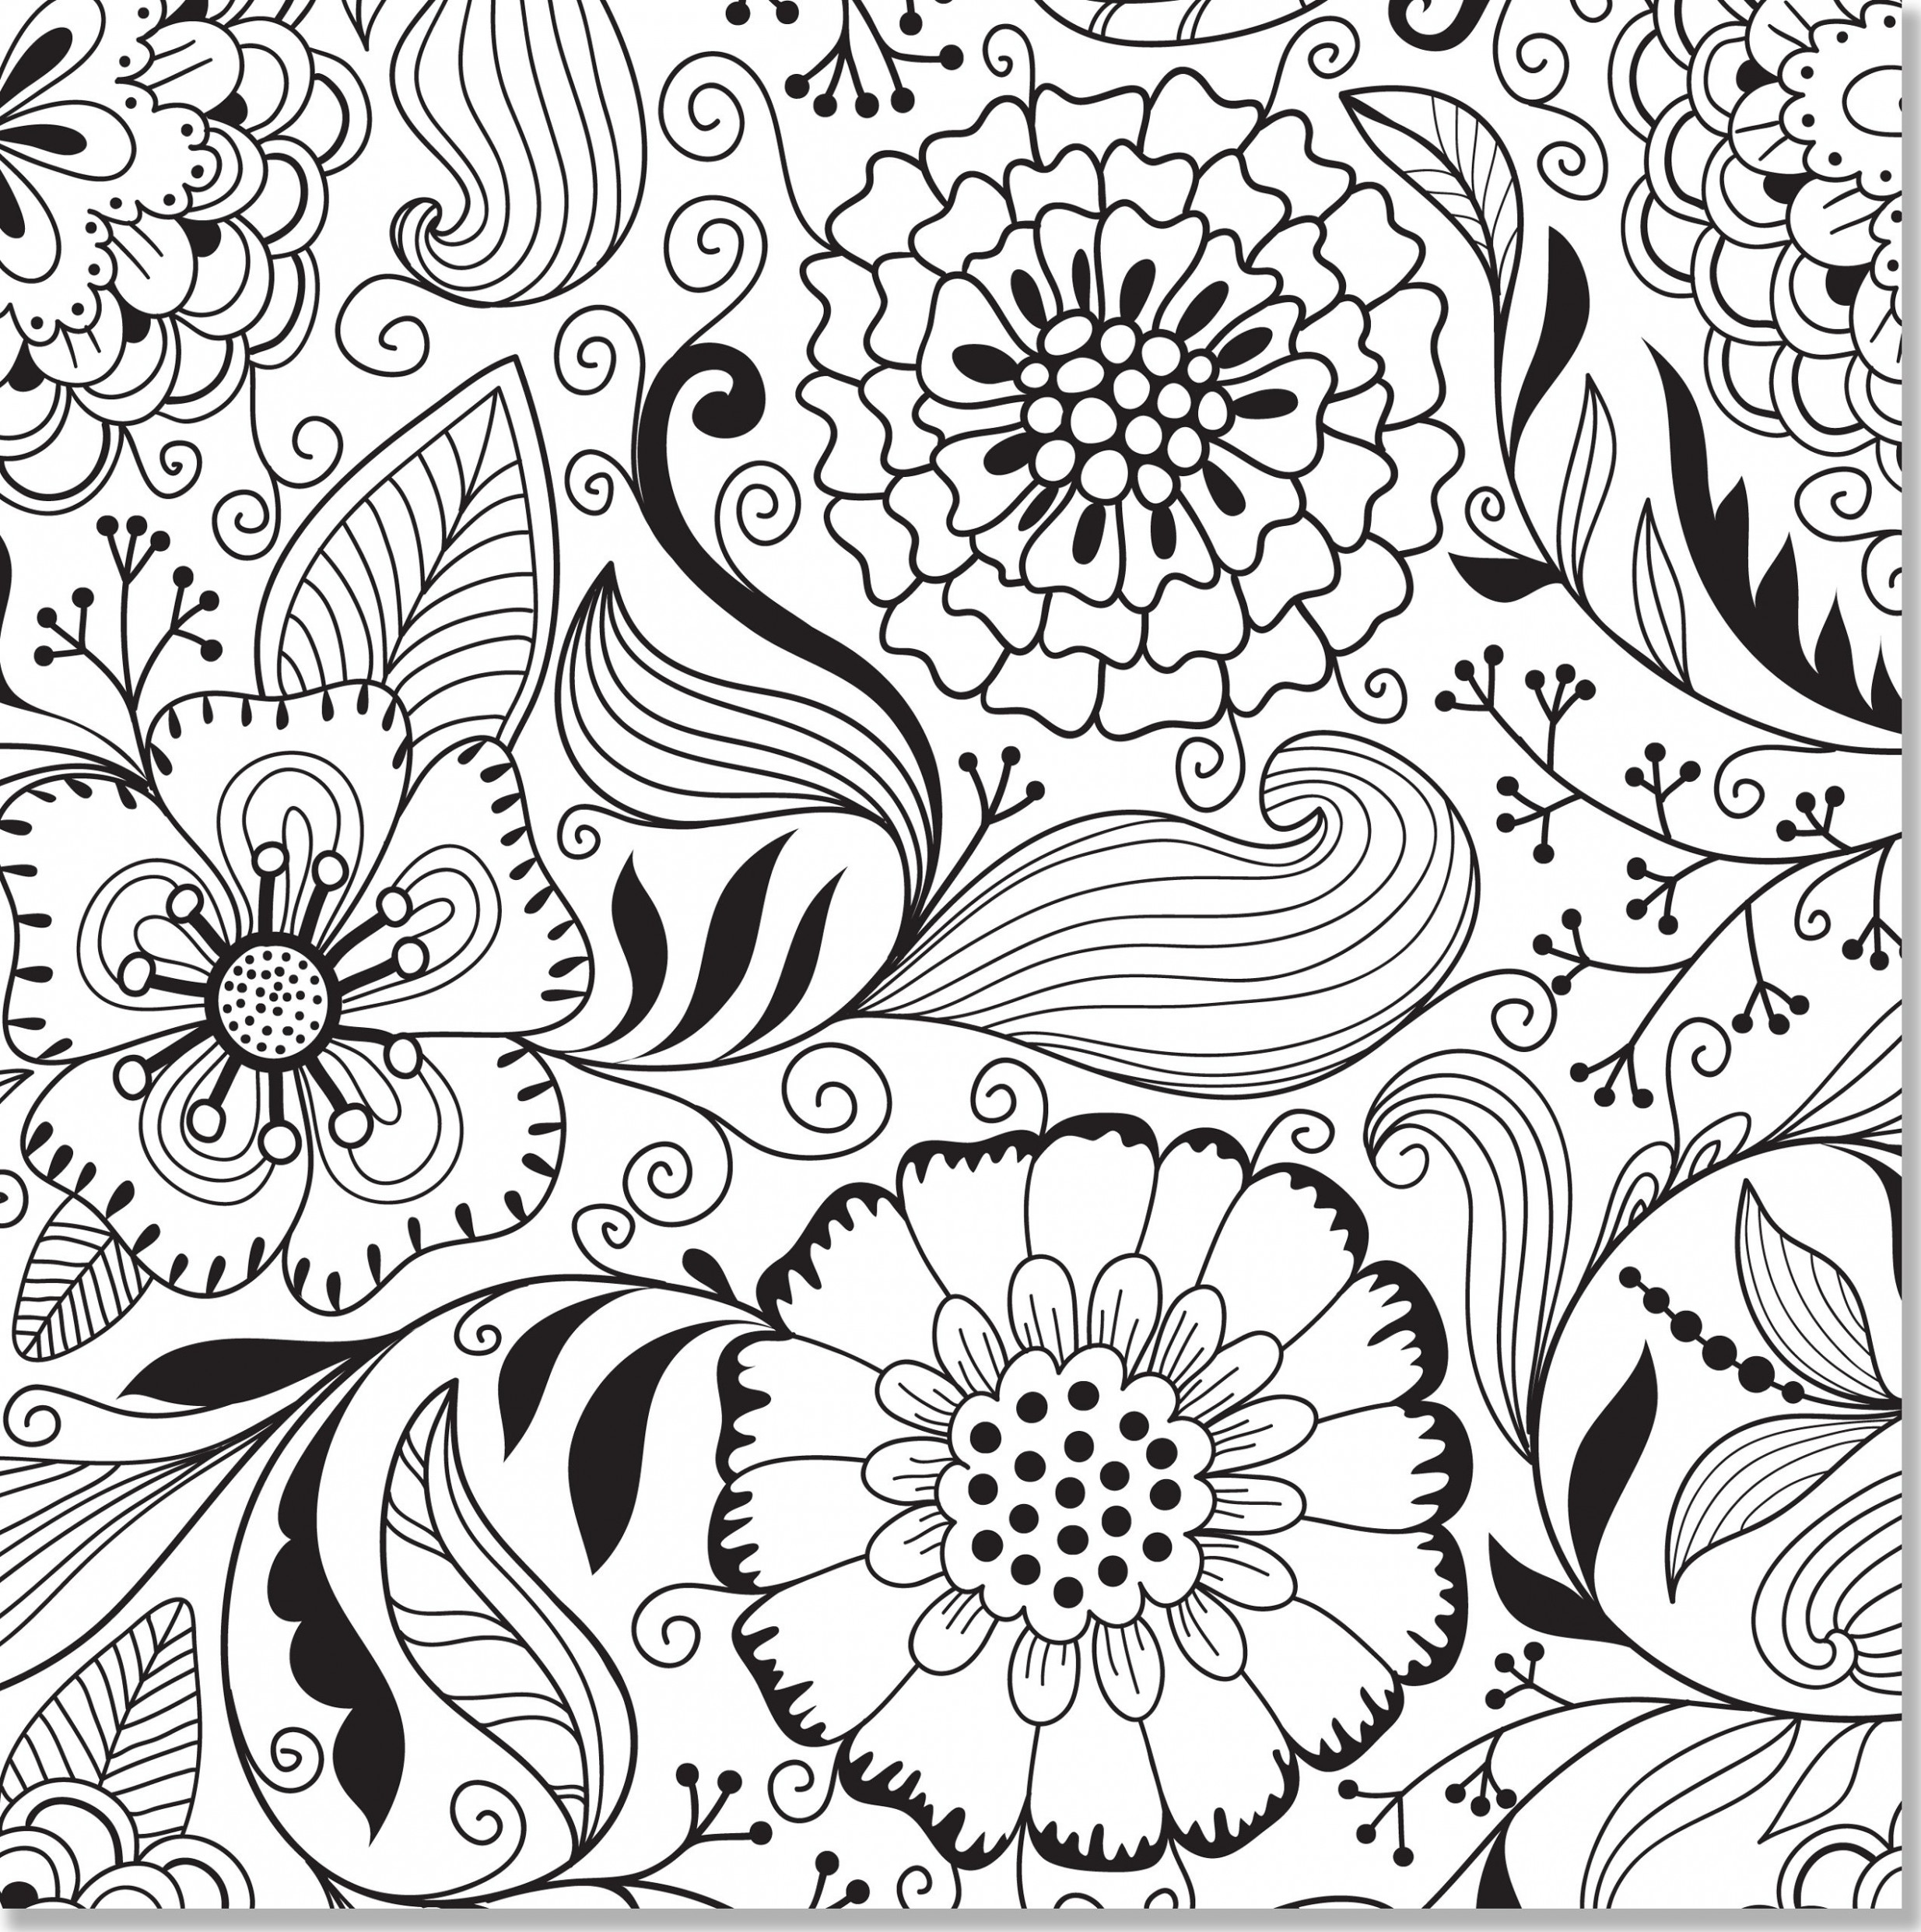 Amazon.com: Floral Designs Adult Coloring Book (18 stress-relieving ...